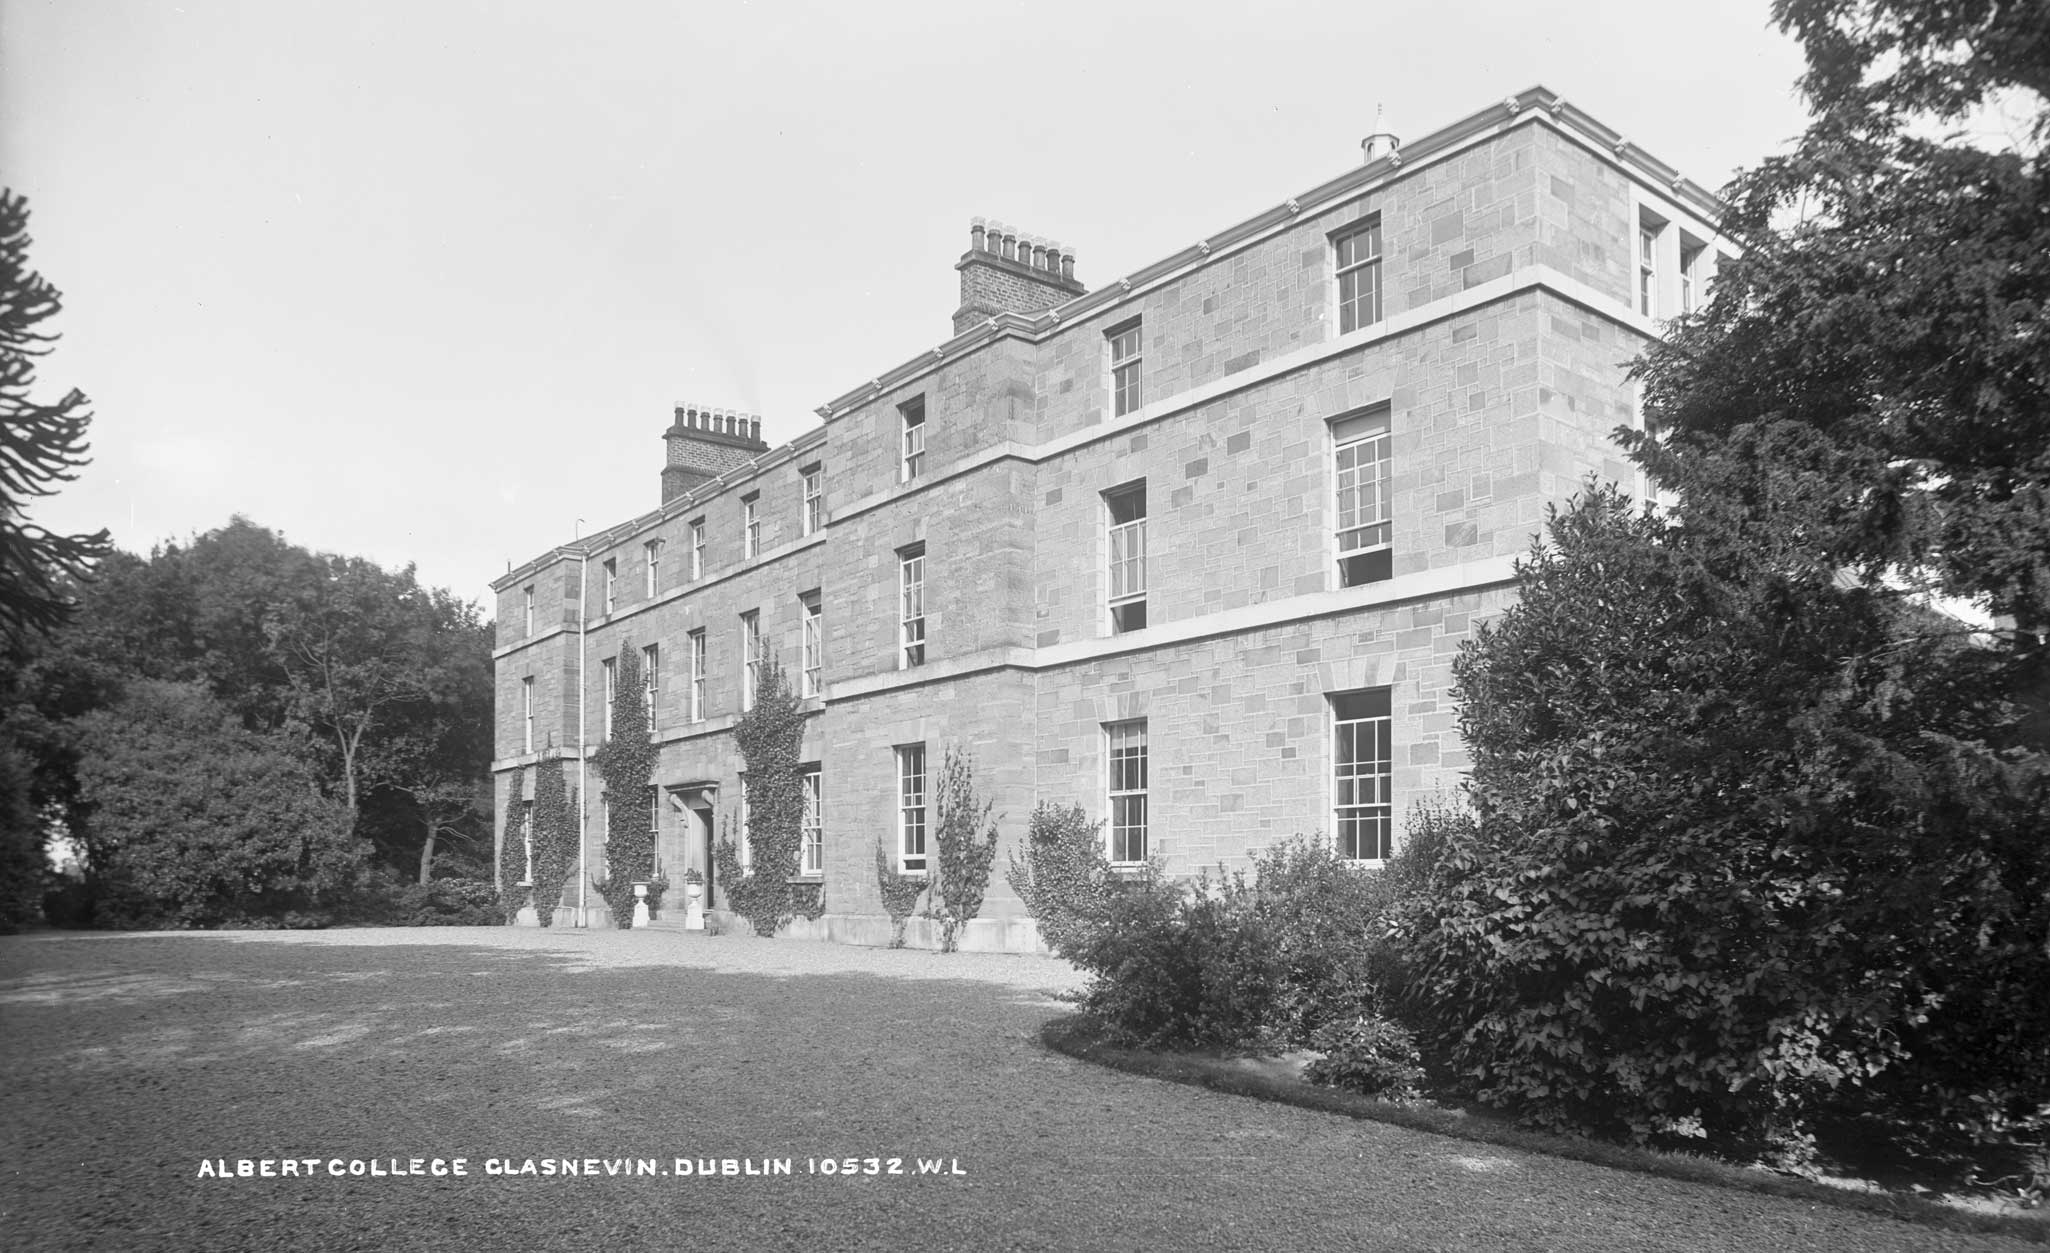 The Albert College in Glasnevin, where the meeting of the Council of Agriculture took place